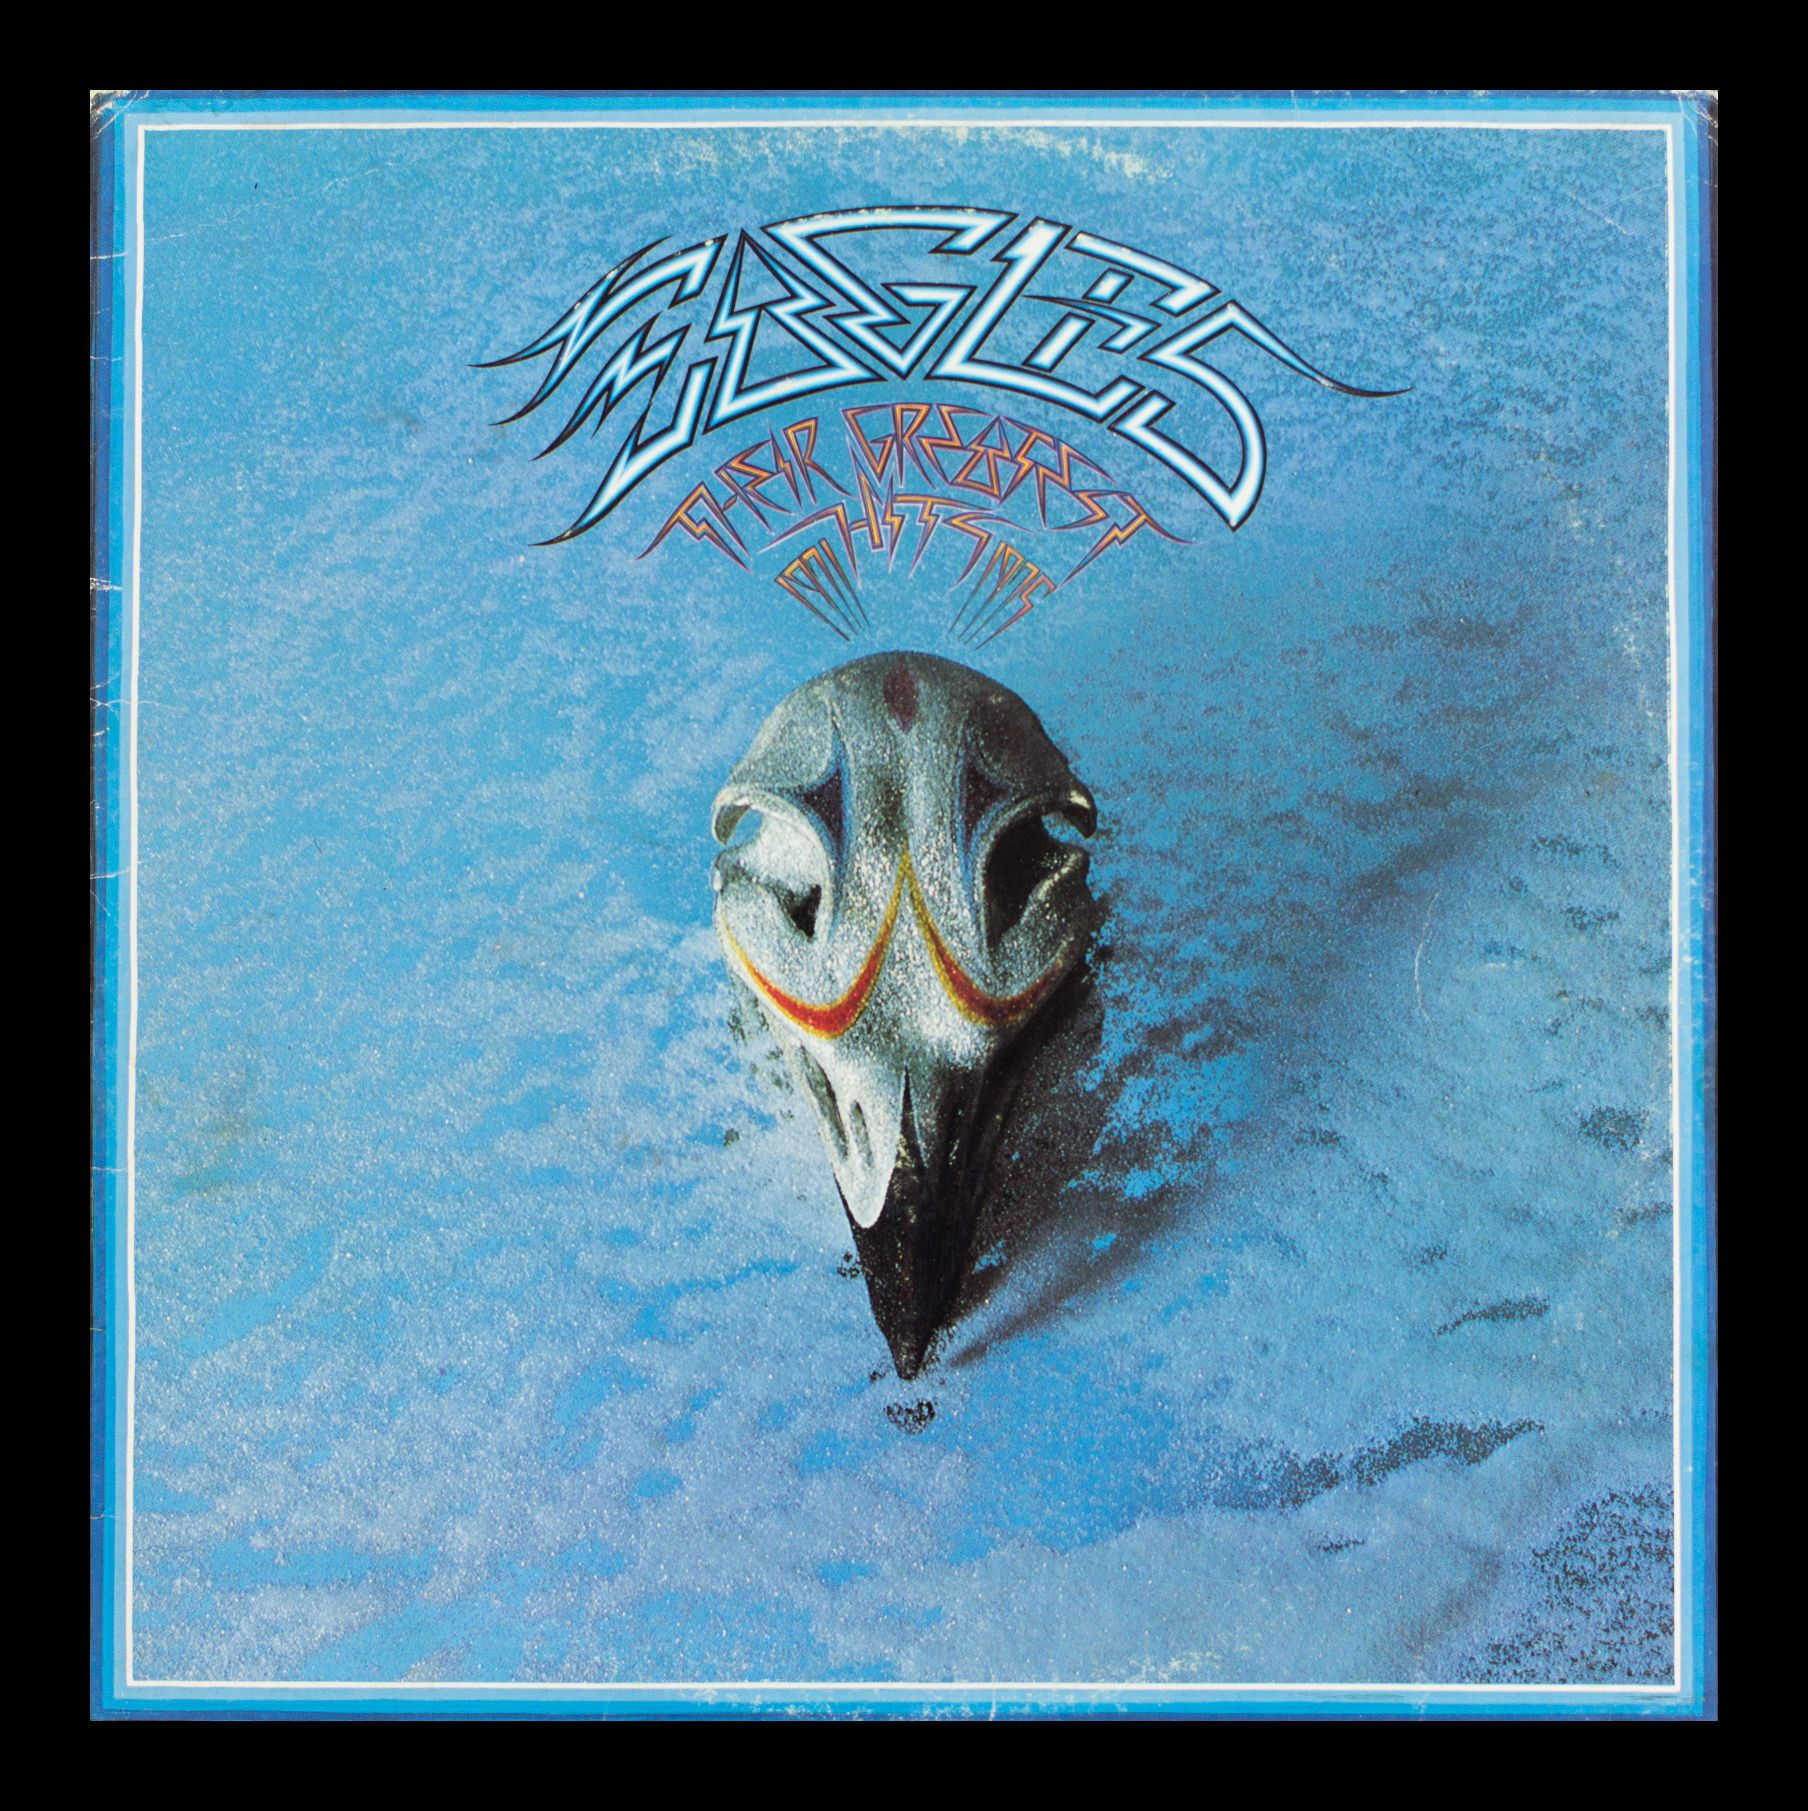 The Eagles  Greatest Hits Vintage Album in Frame